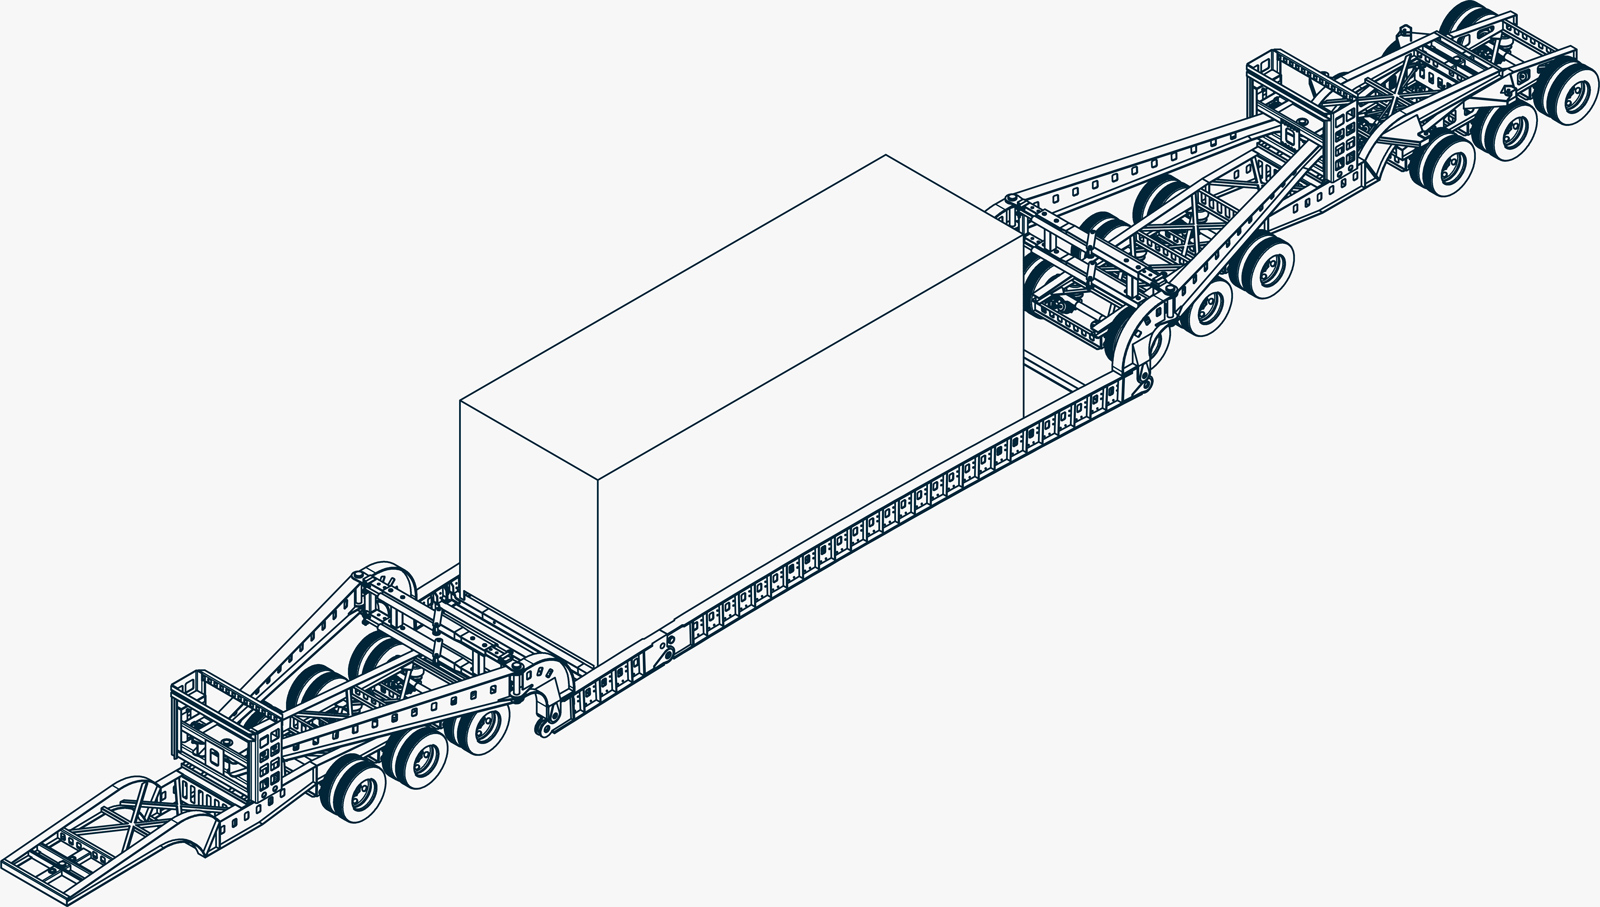 A mechanical drawing of a perimeter 13 axle trailer shown in an isometric view.